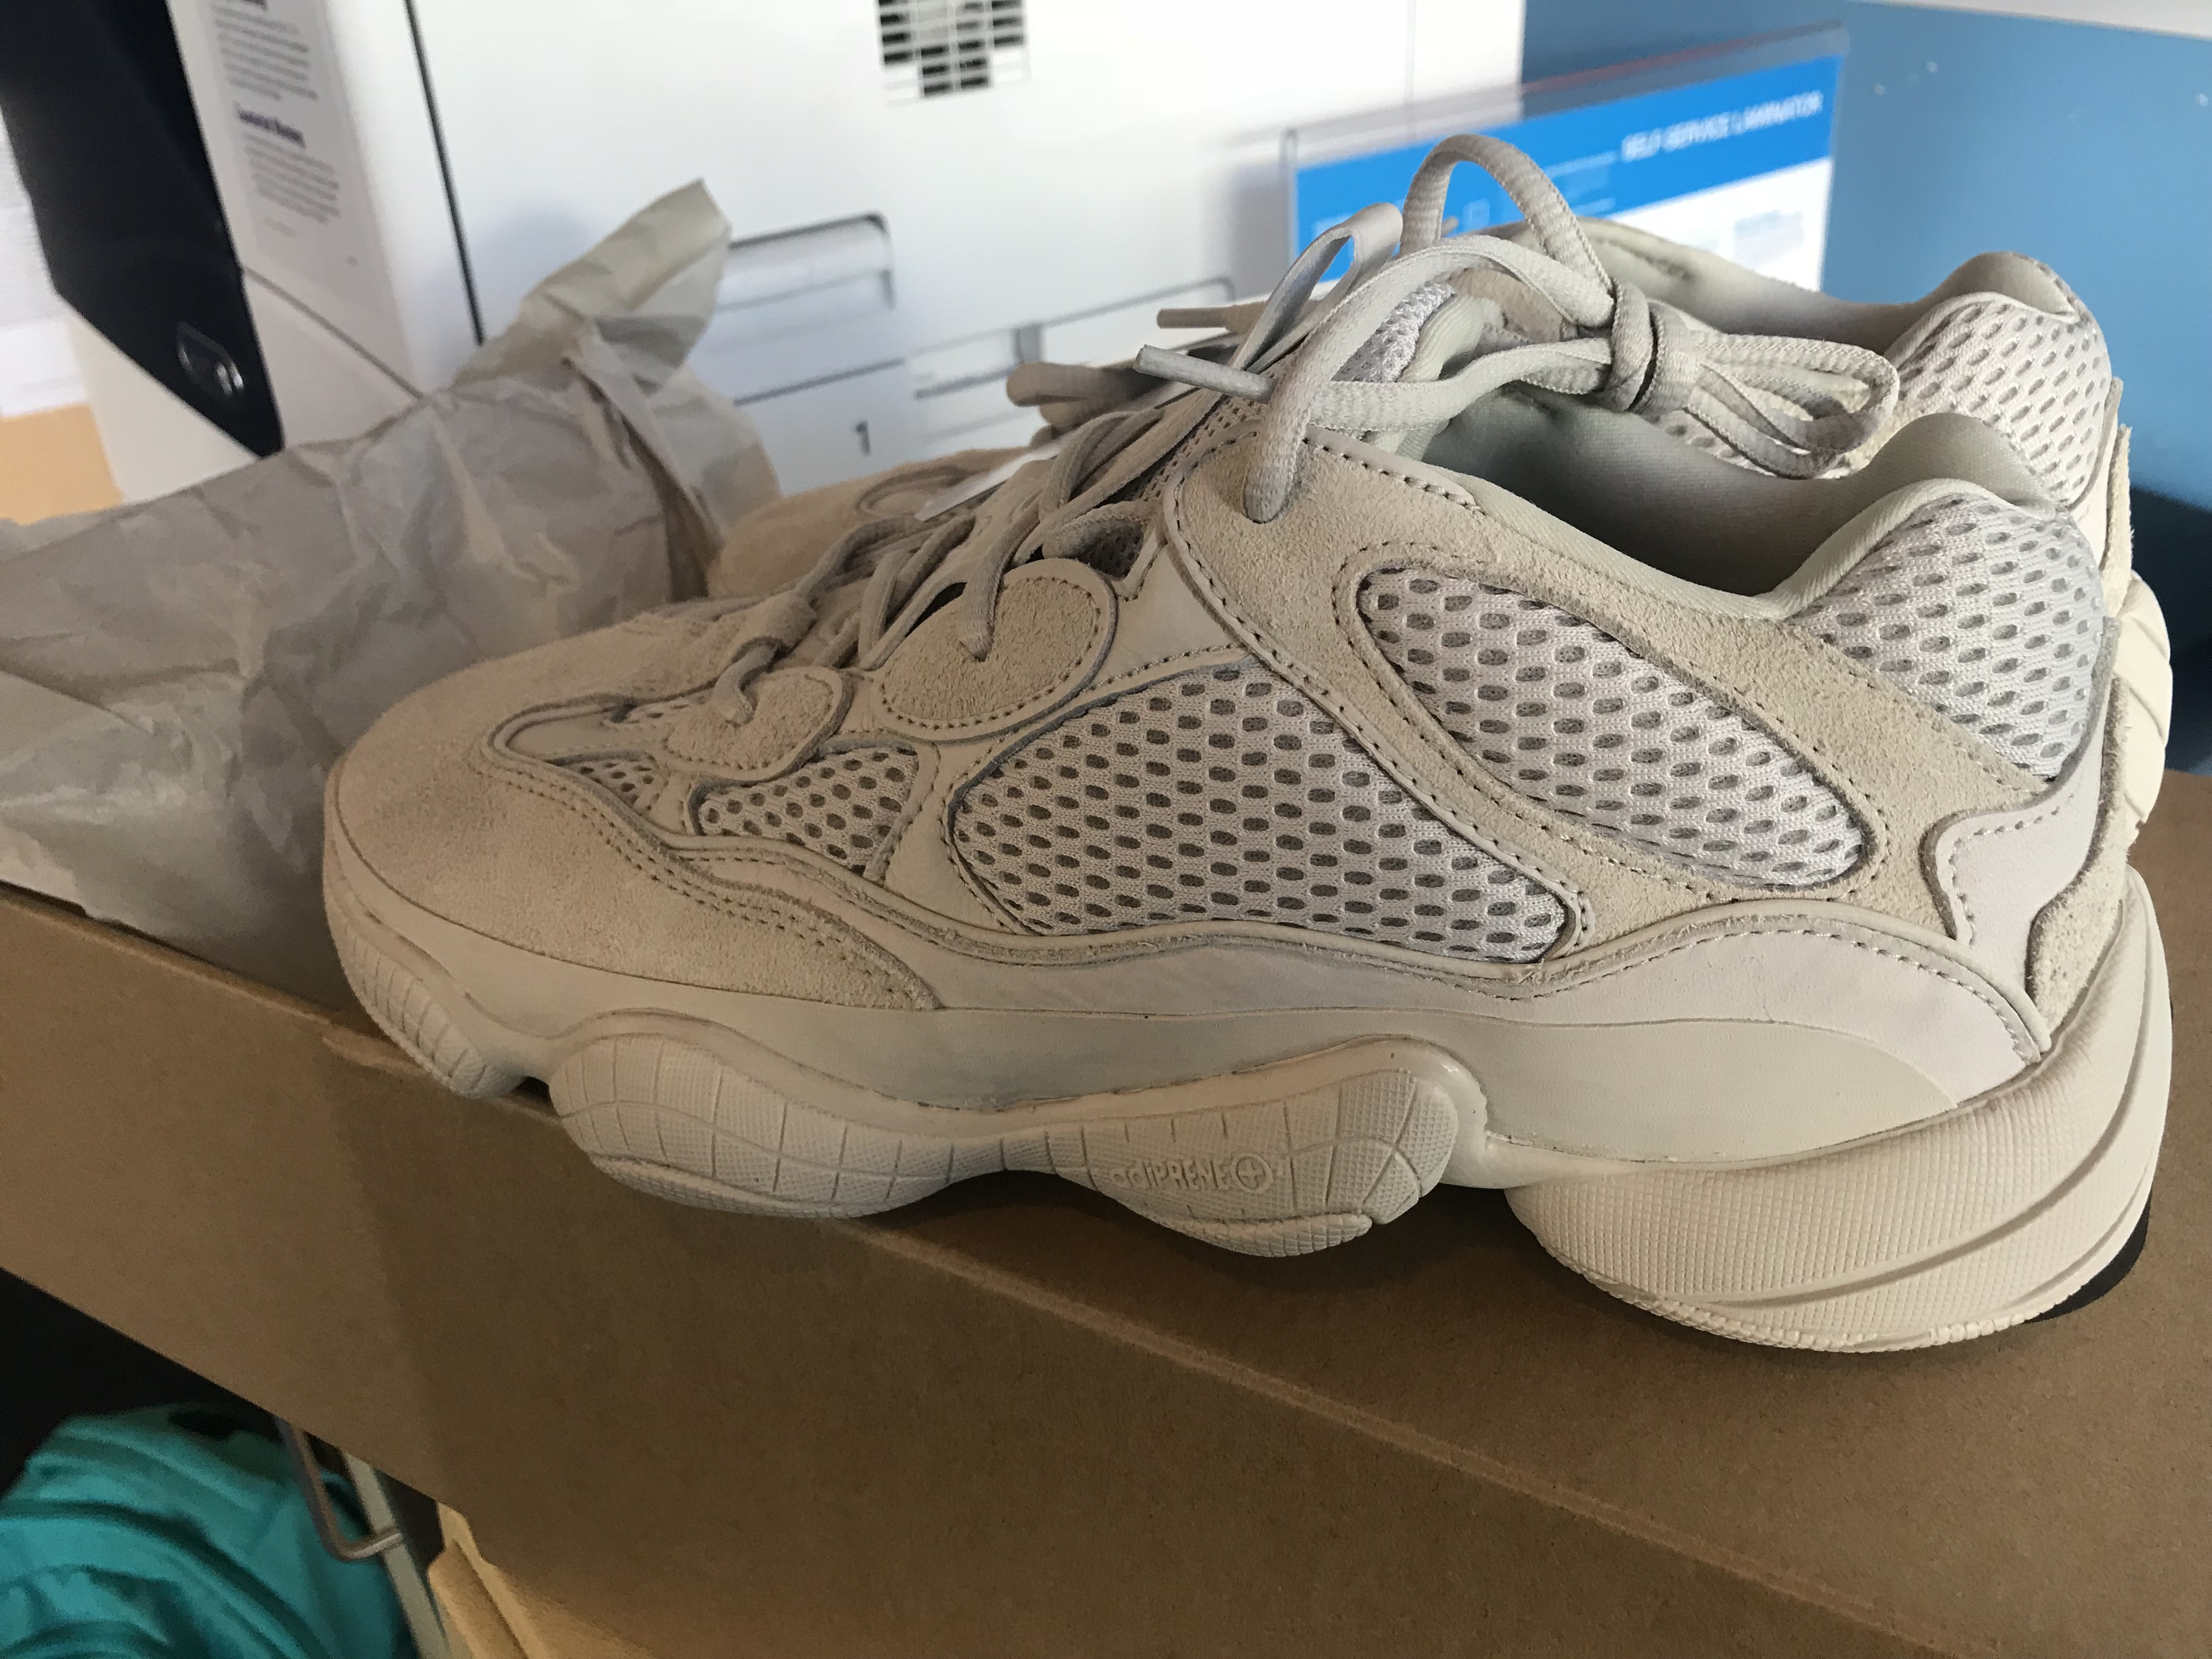 newest collection f7856 36294 Adidas Yeezy 500 Blush Size US 9 CONFIRMED ORDER WAVE RUNNER YEEZY SUPPLY